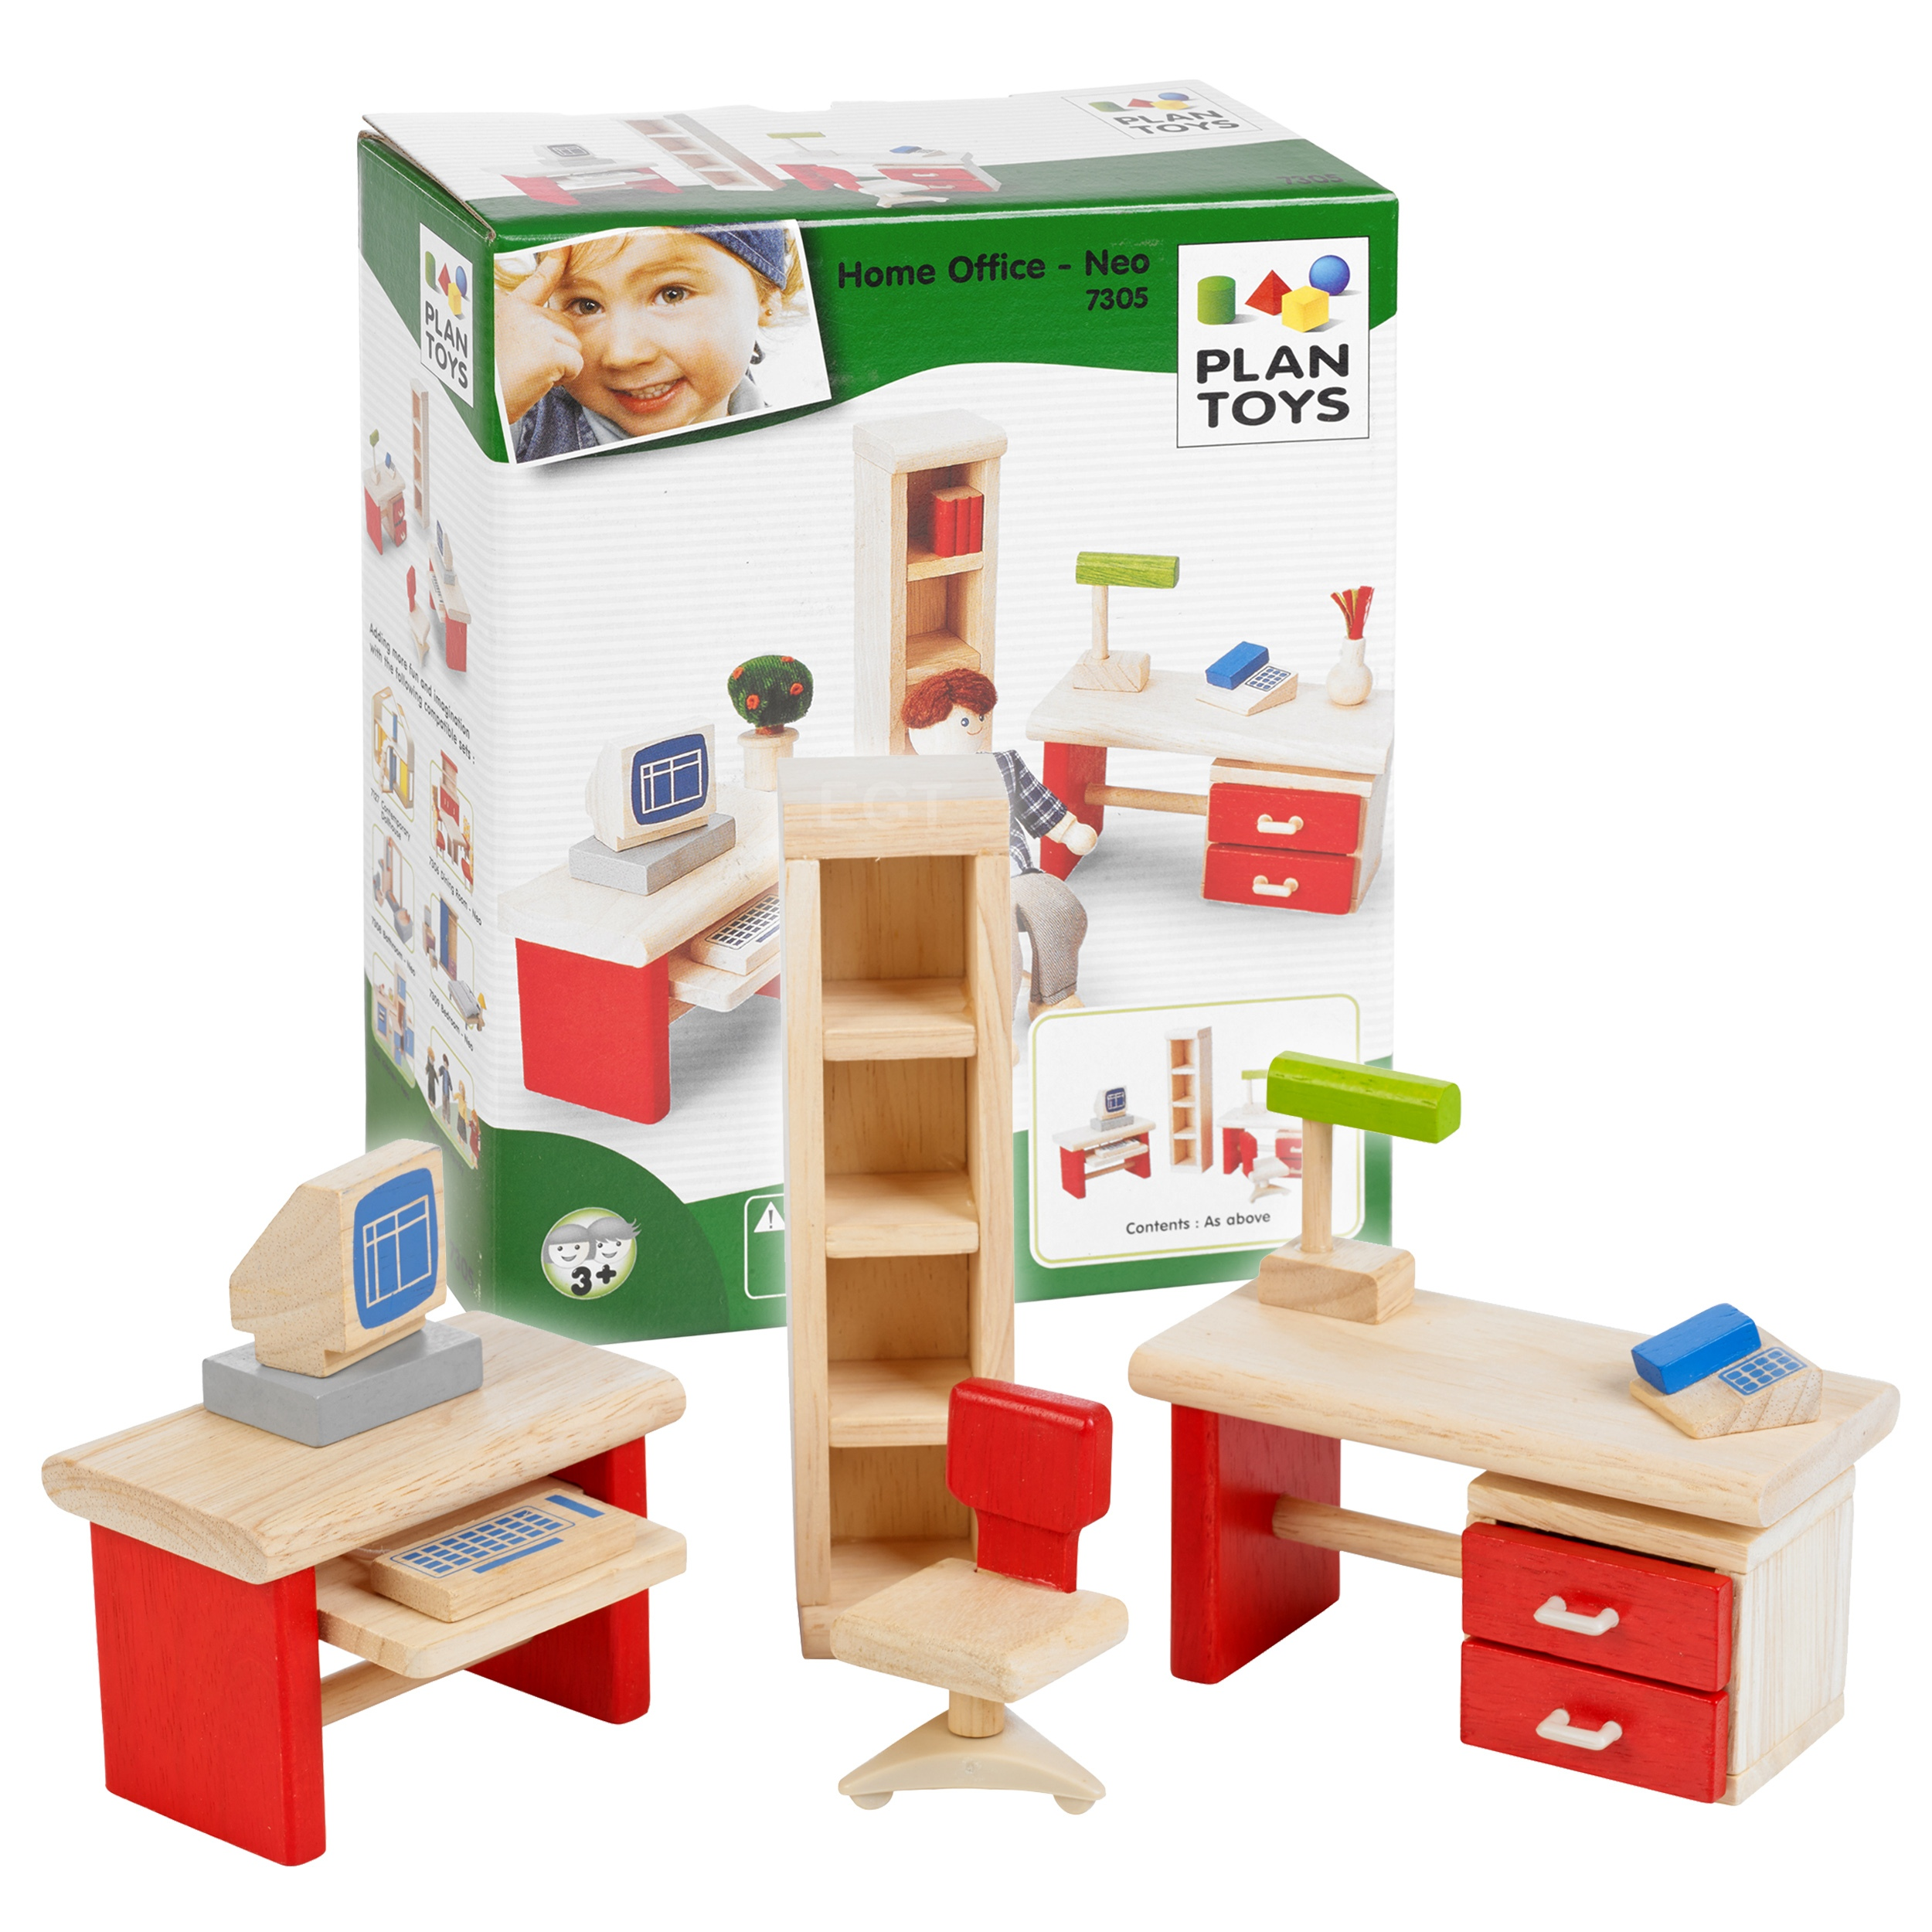 Plan toys wooden home office